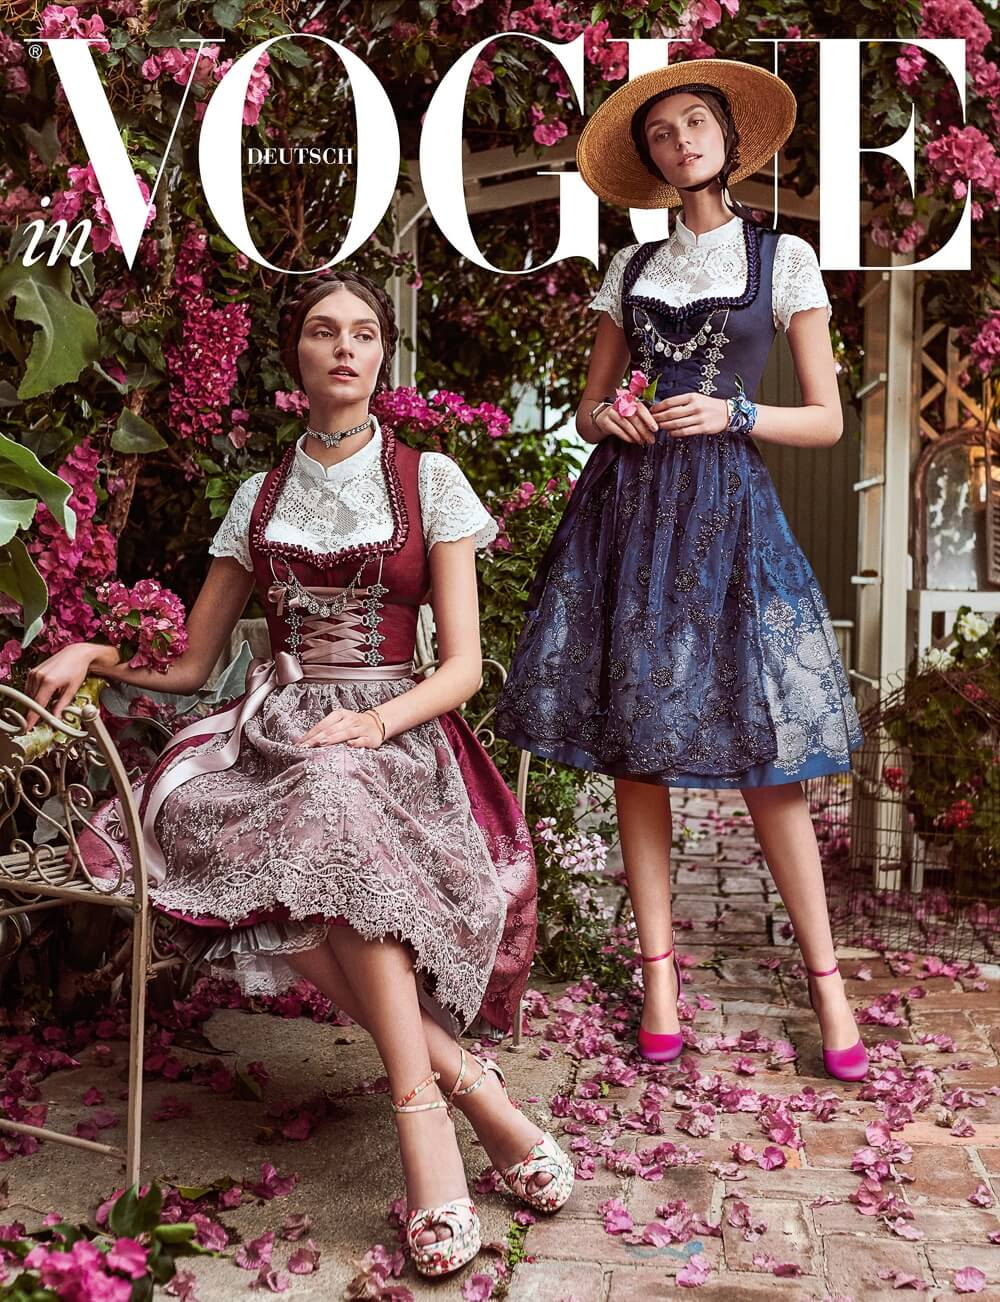 Vogue-Germany-August-2018-Deimante-Misiunaite-Andreas-Ortner-6